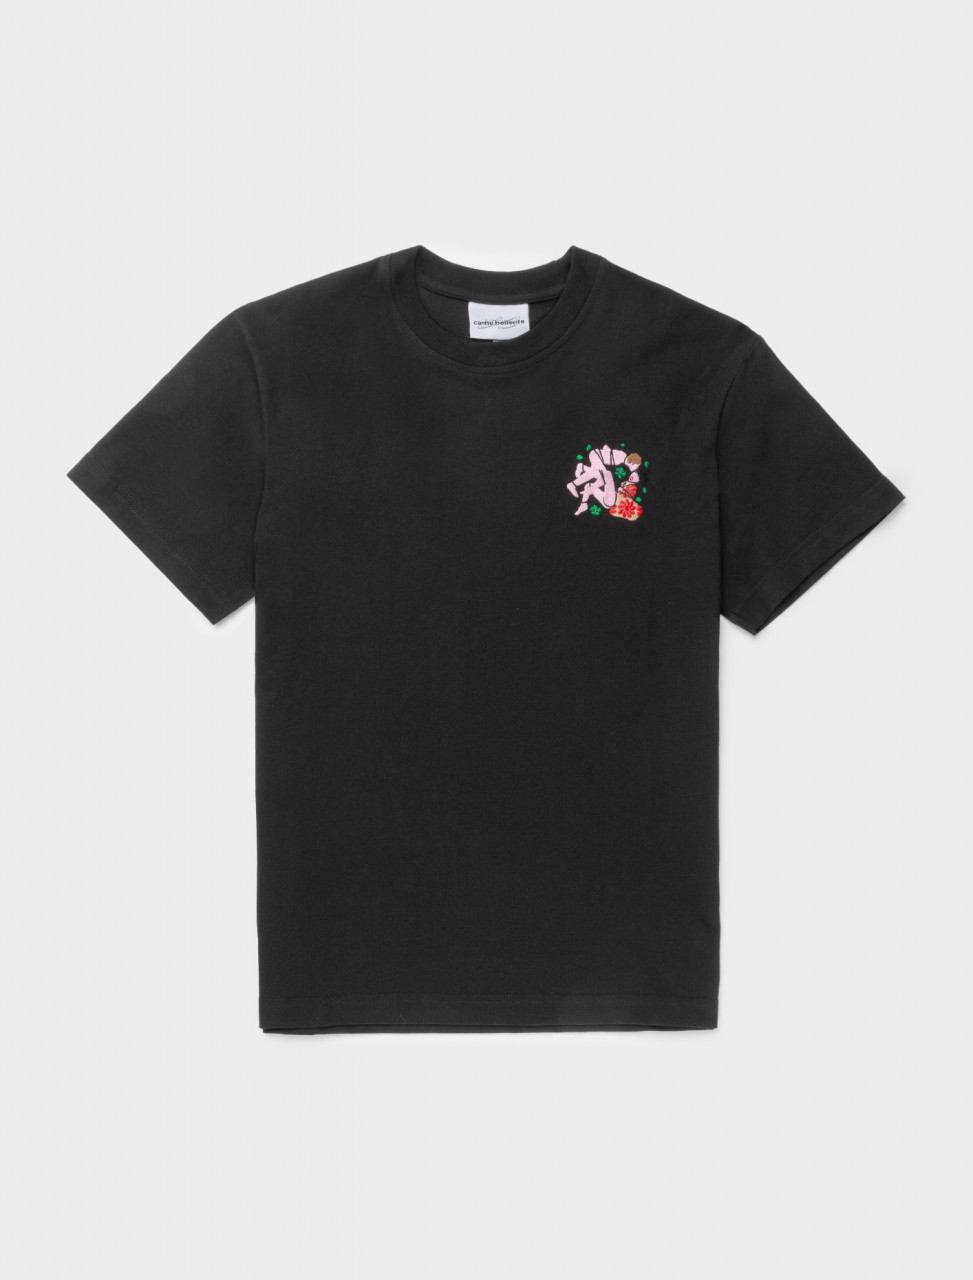 Tied for the Gods T-Shirt in Black